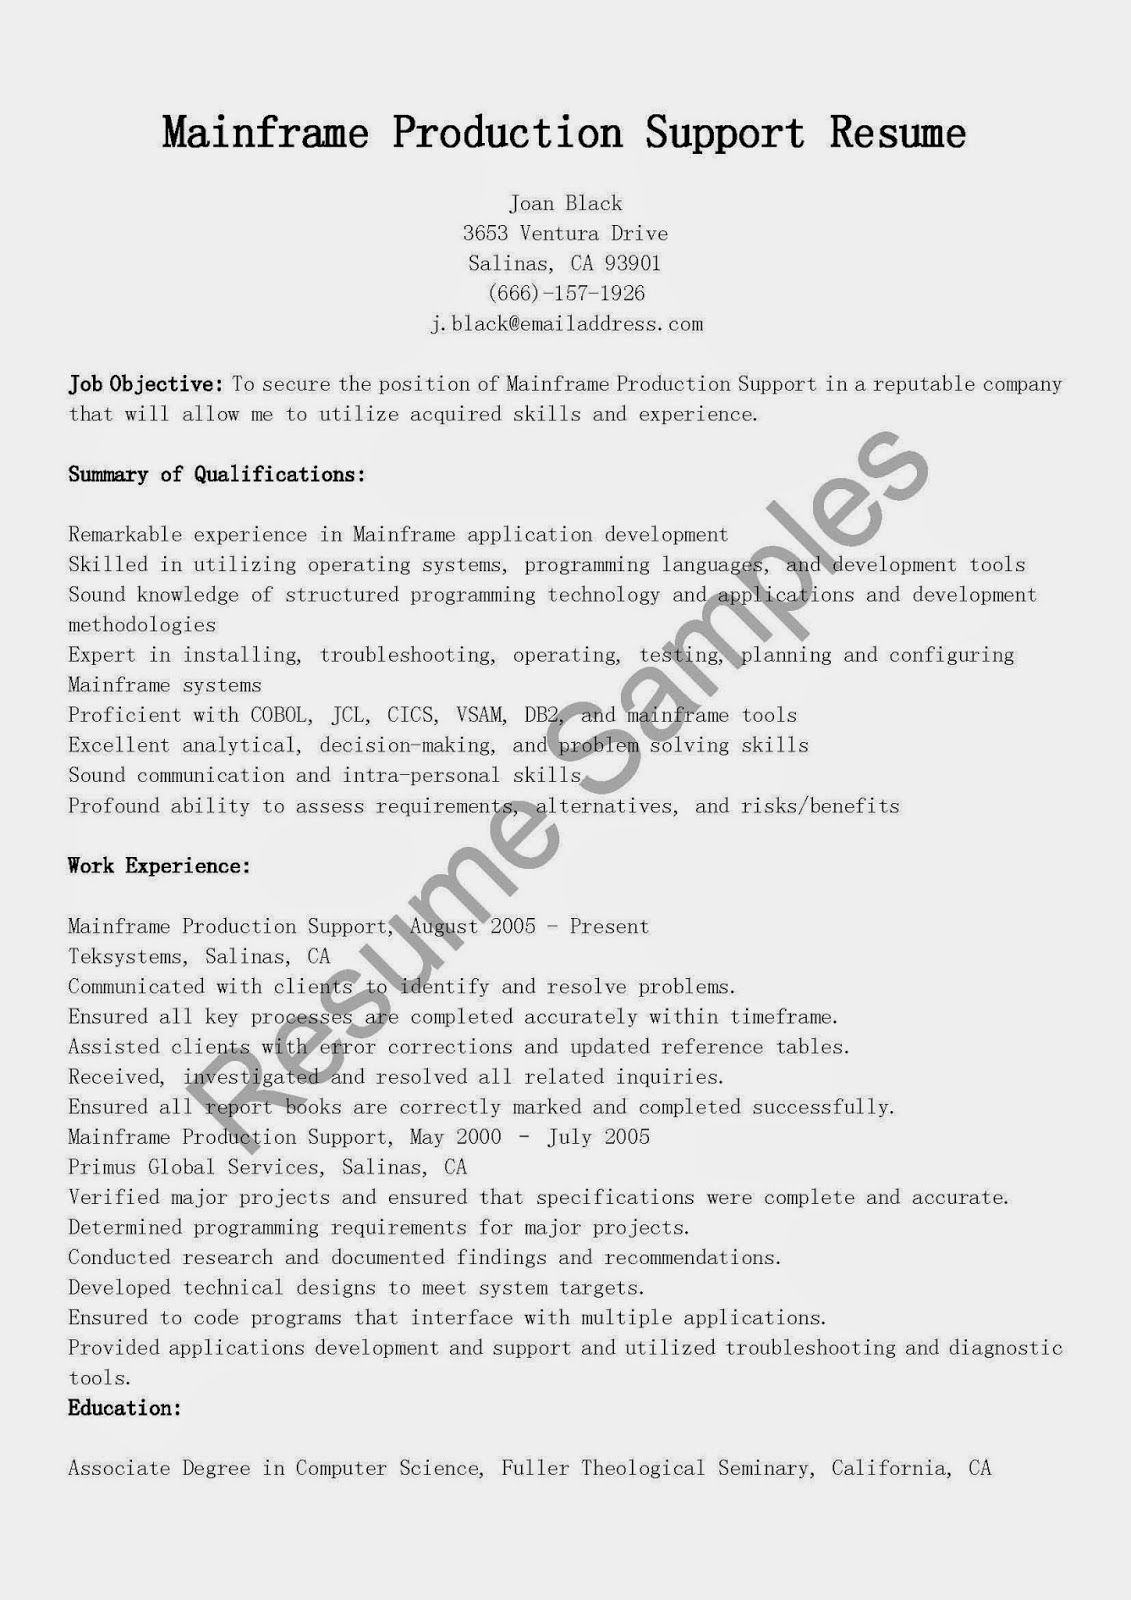 Mainframe Production Support Resume Sample   resume